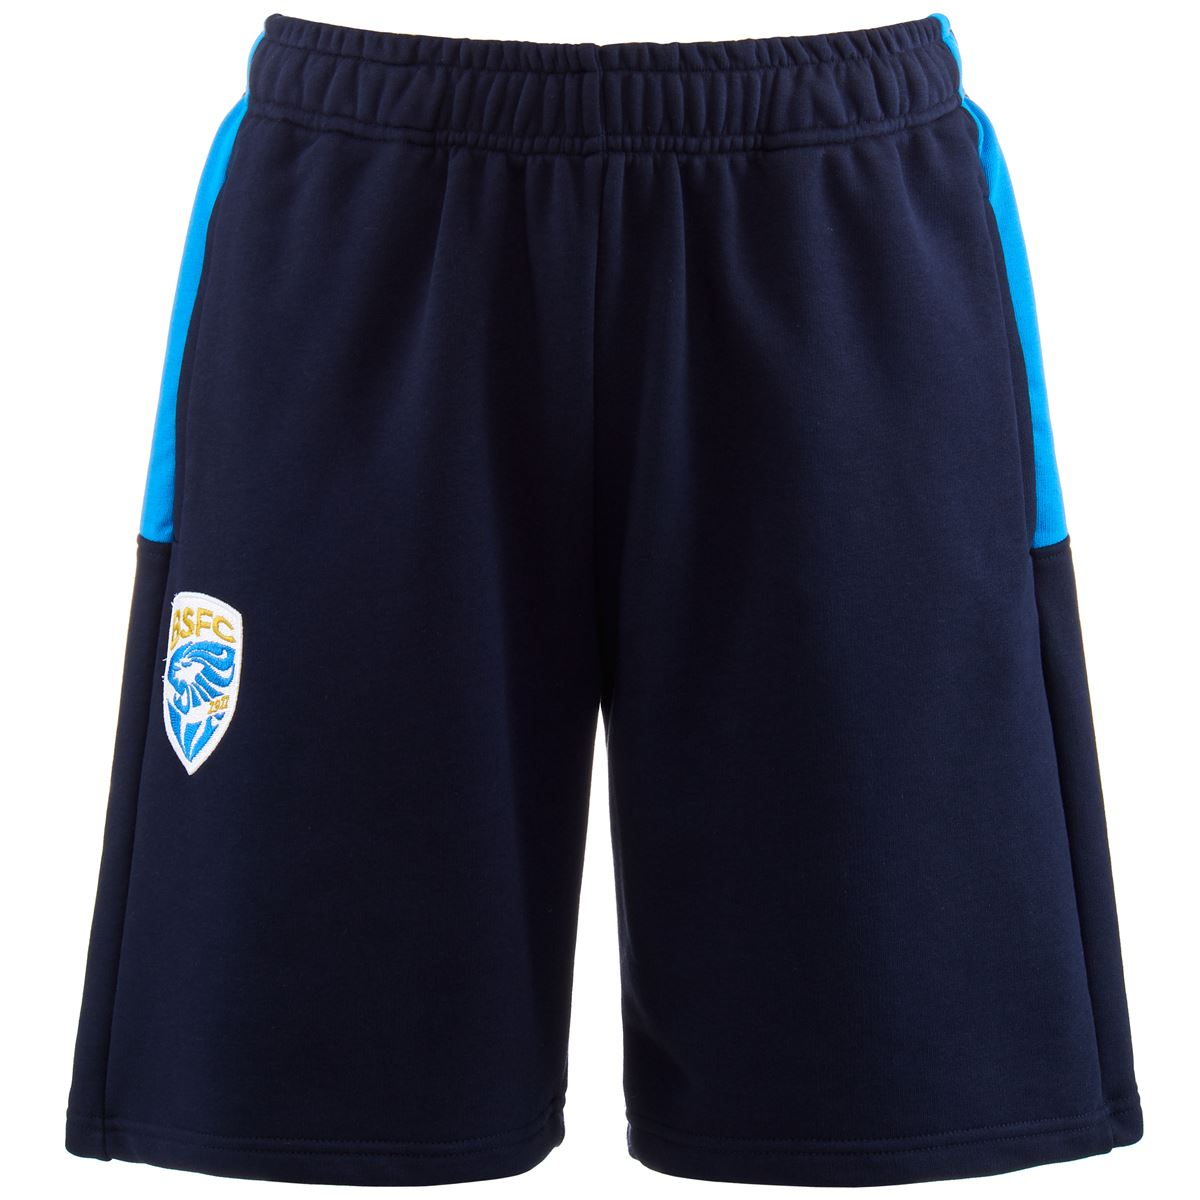 Kappa Shorts for man-304UYY0BSC